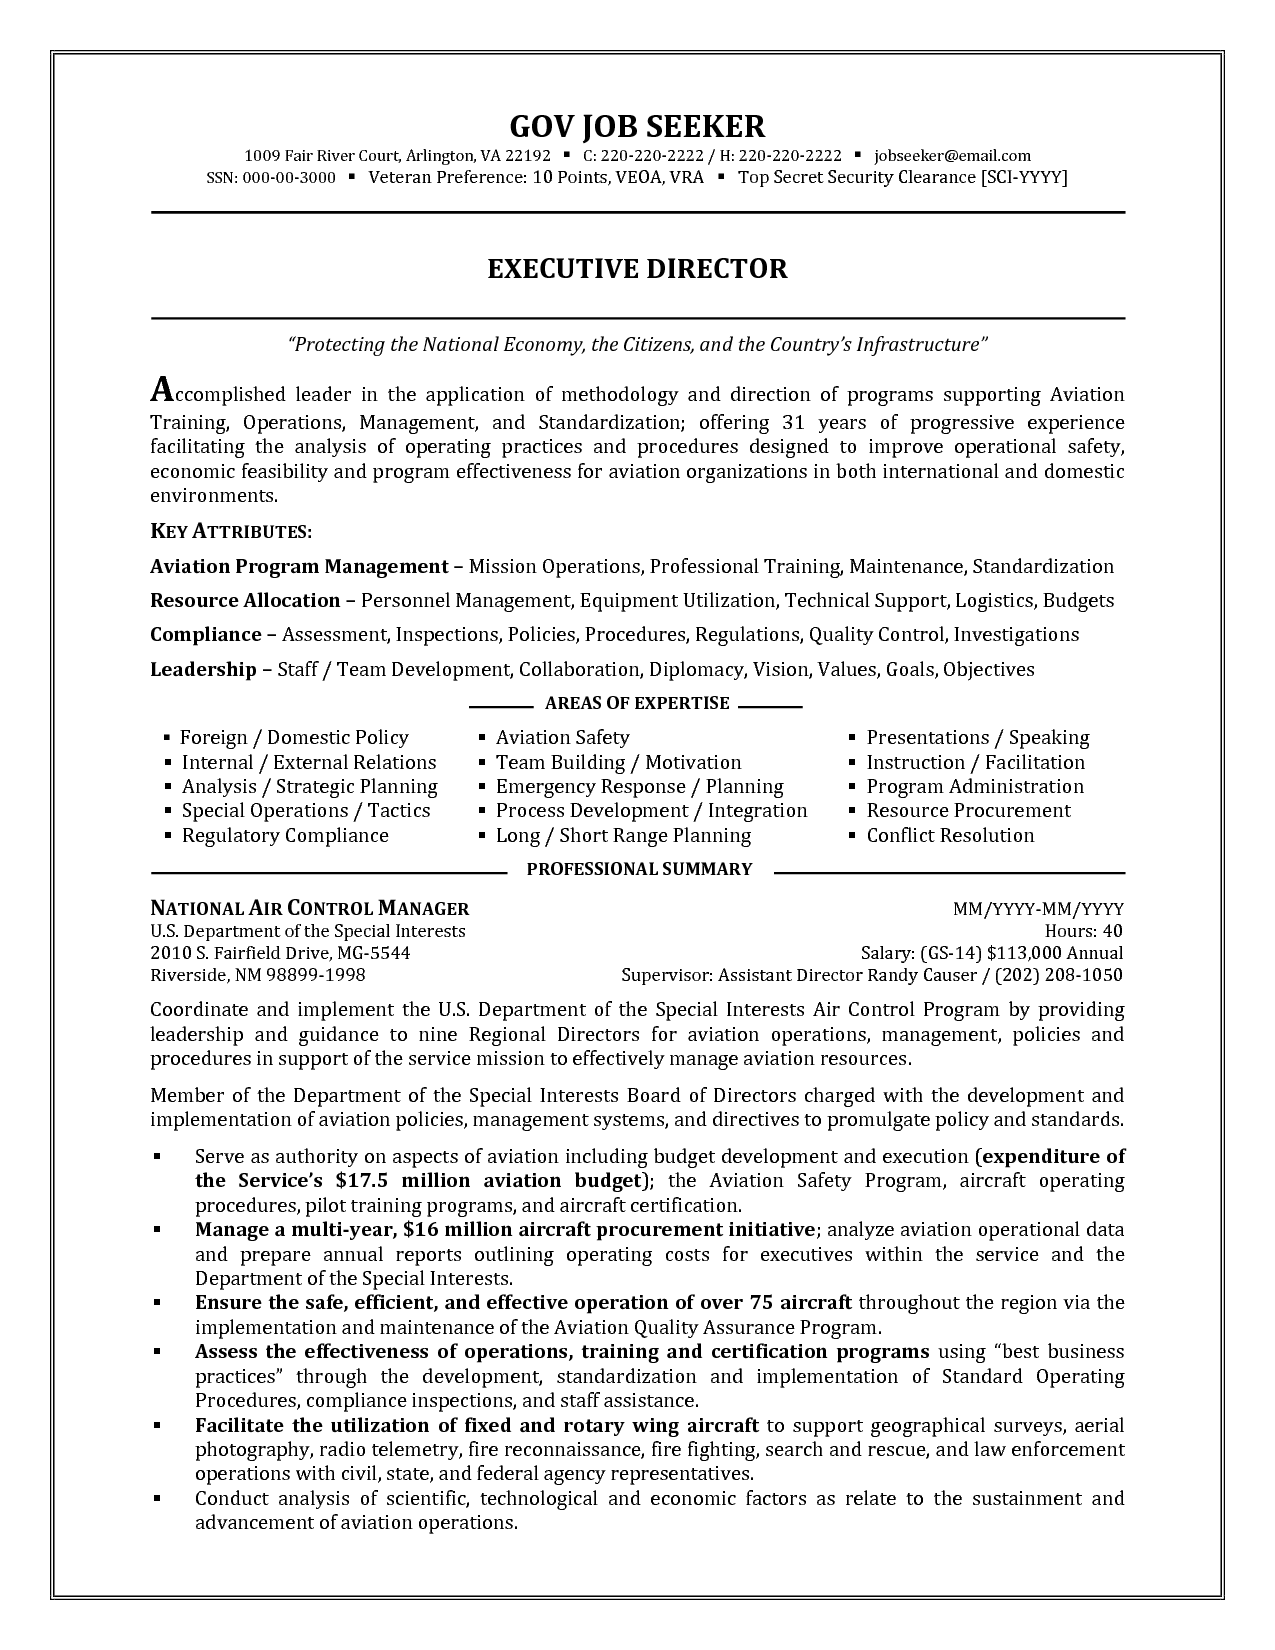 Production Supervisor Job Description Restaurant Supervisor Job Production  Line Worker Resume Samples Assembler Line Worker Professional